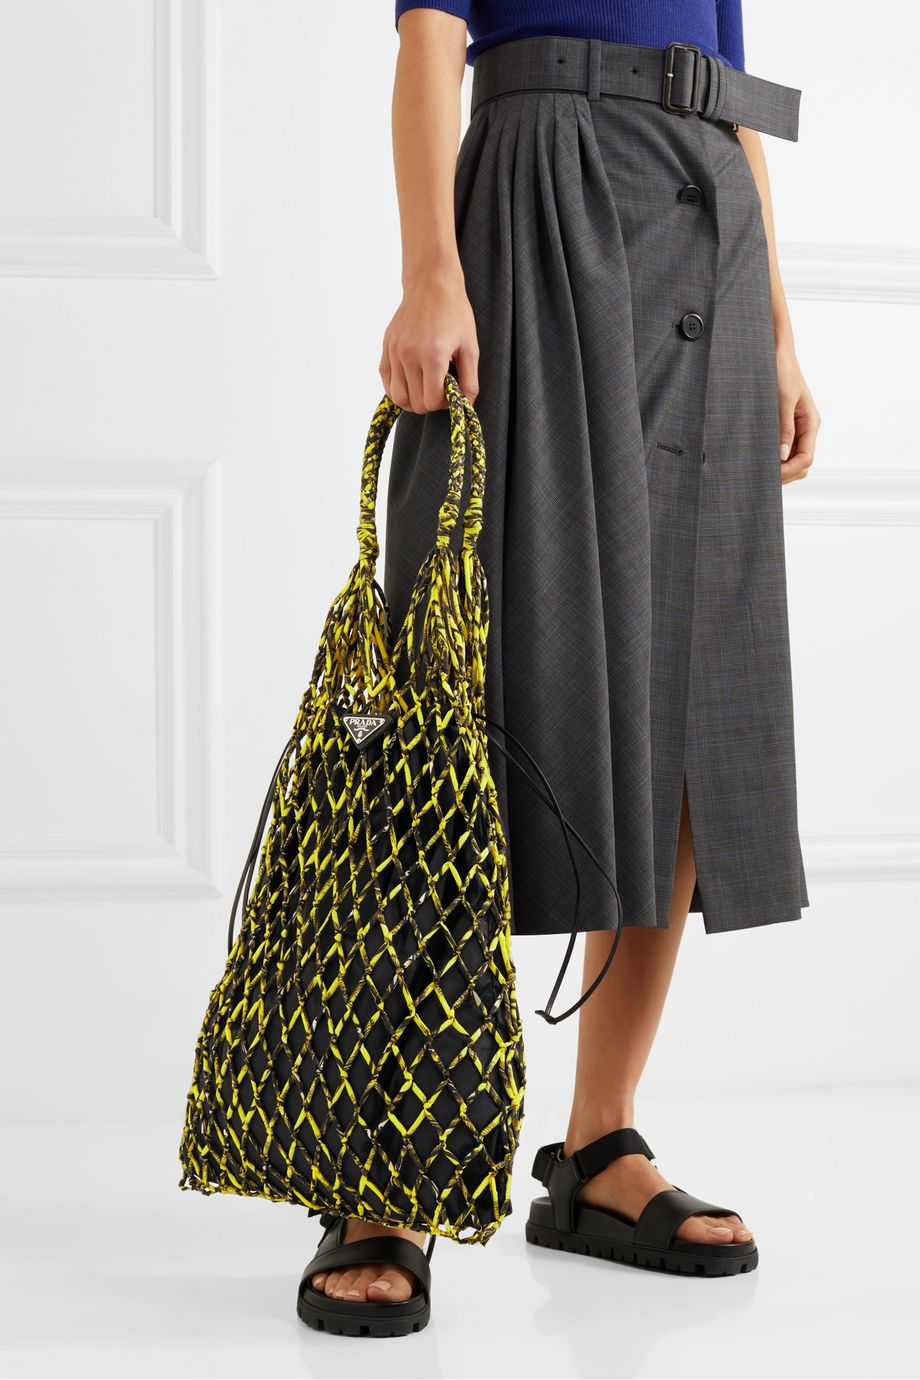 Prada String large leather-trimmed printed nylon macramé tote